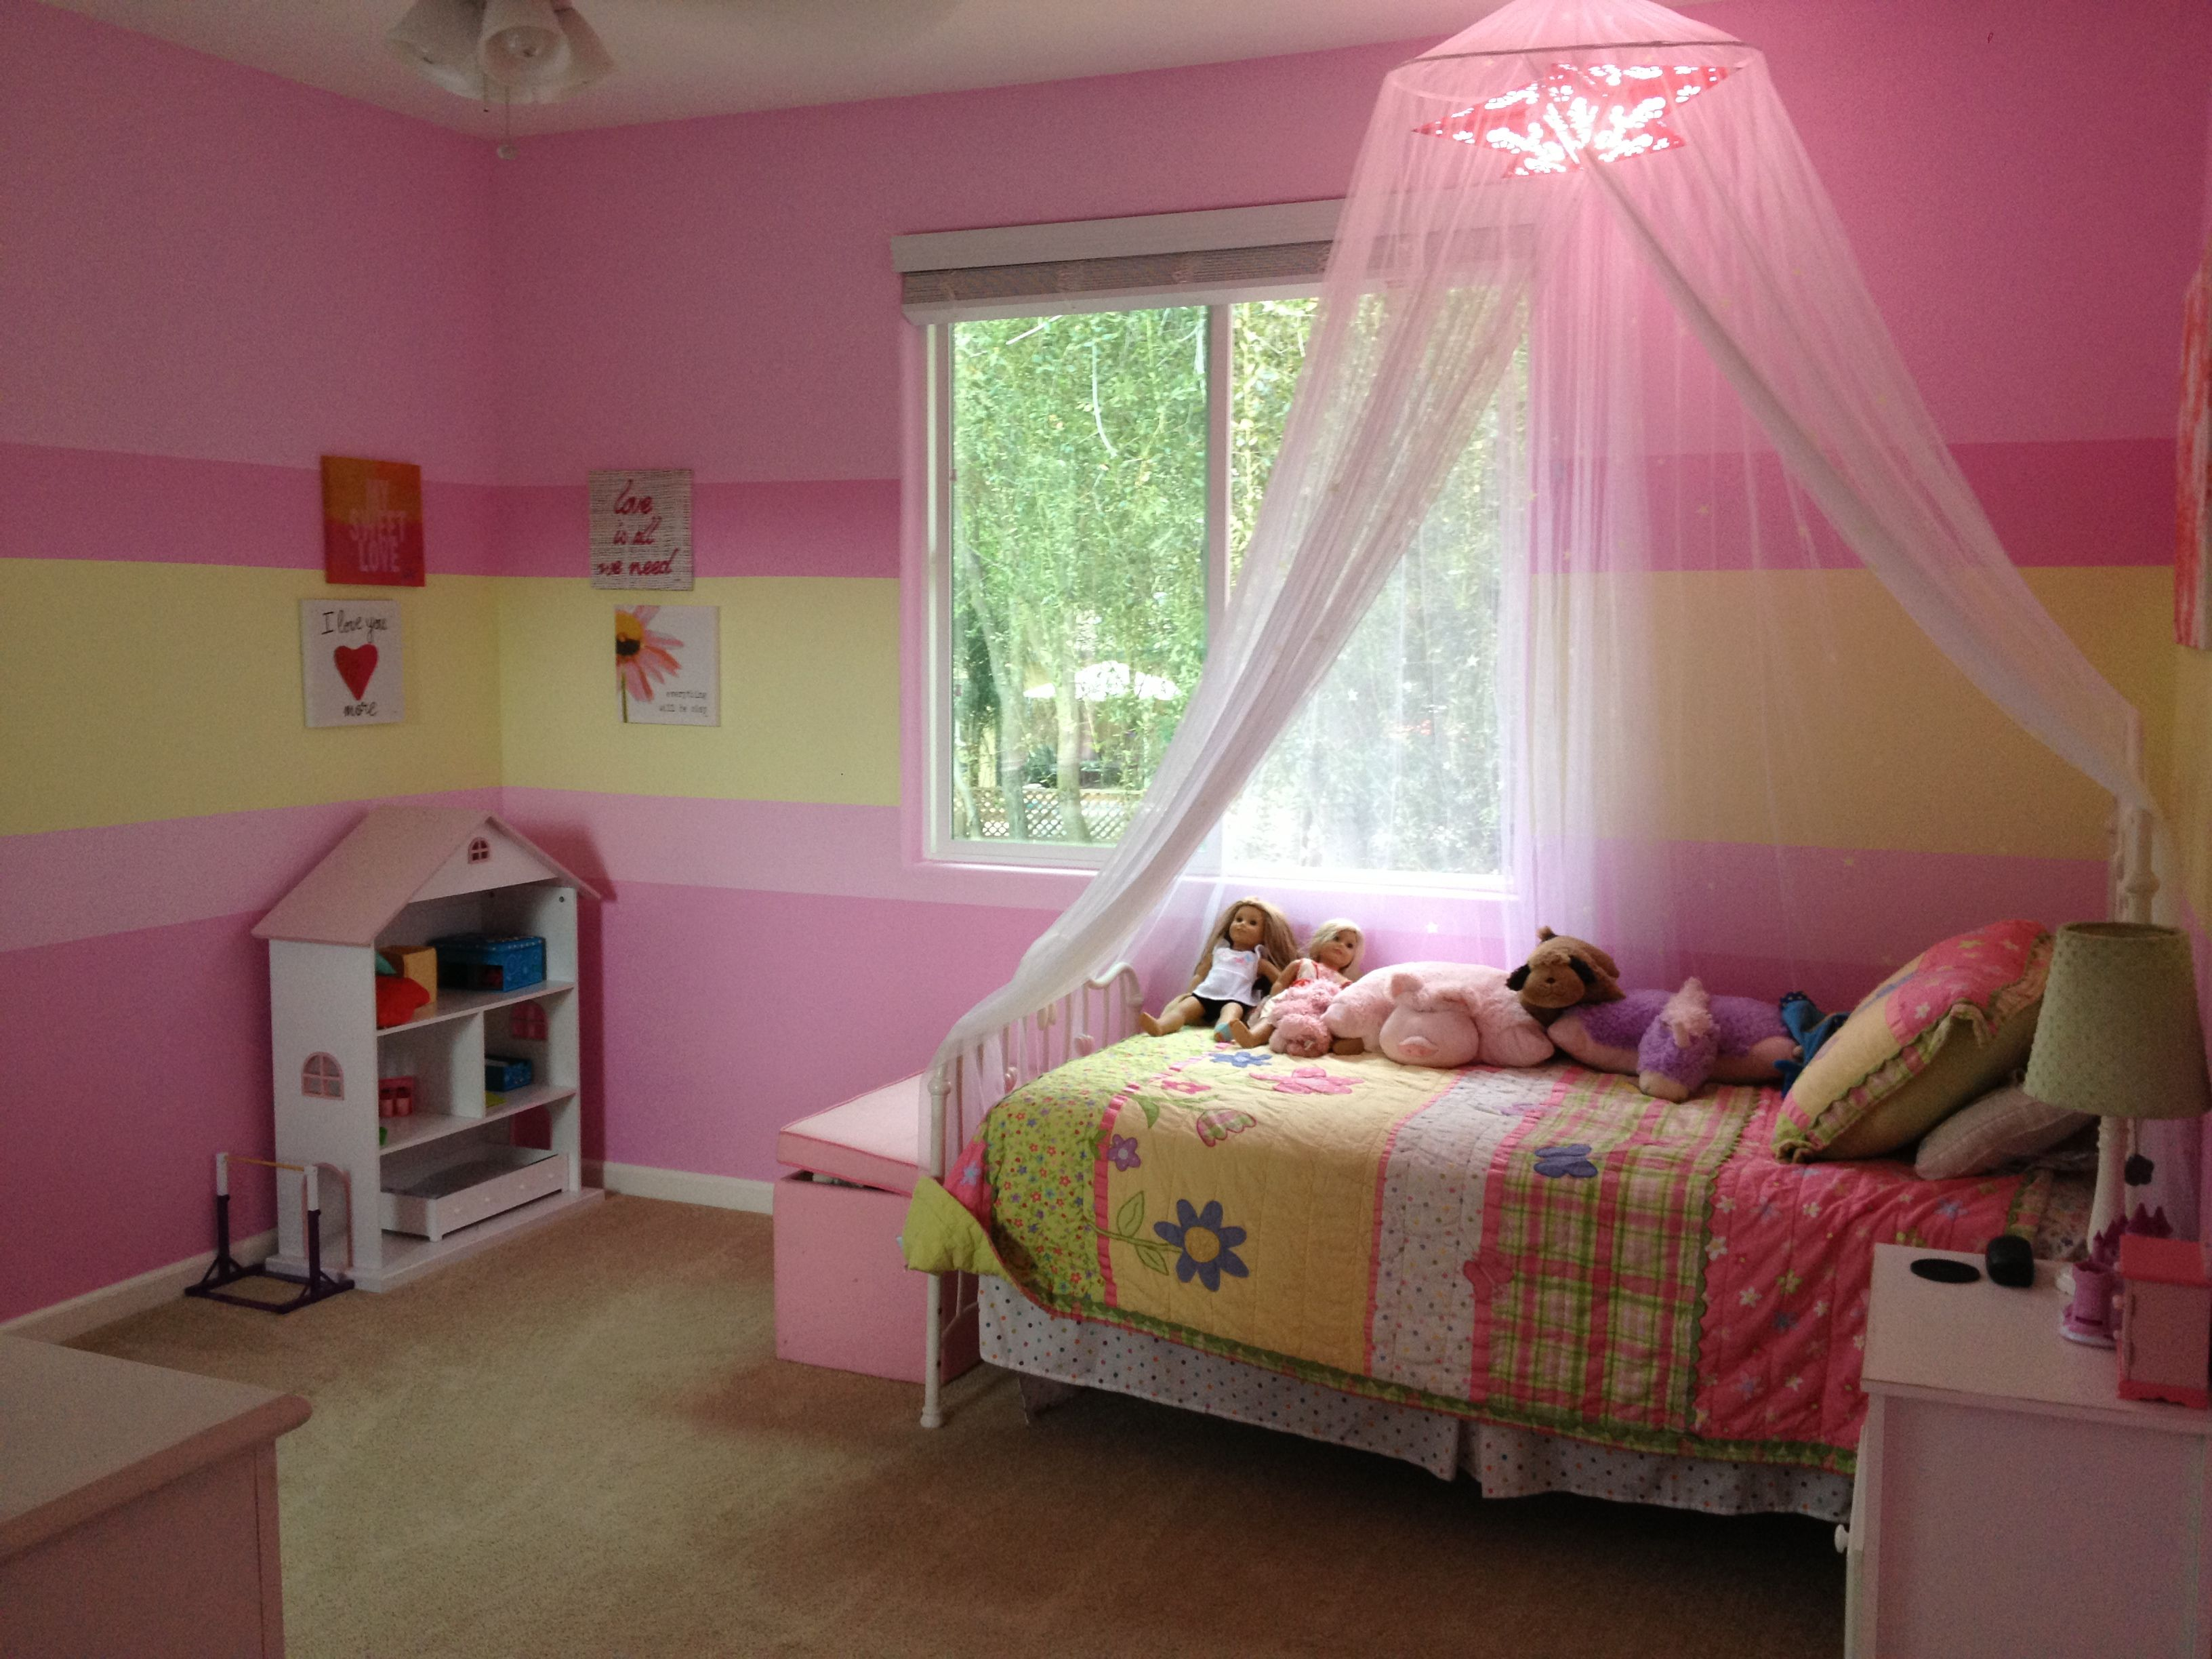 Girls bedroom painted stripes of pink and green so girly and